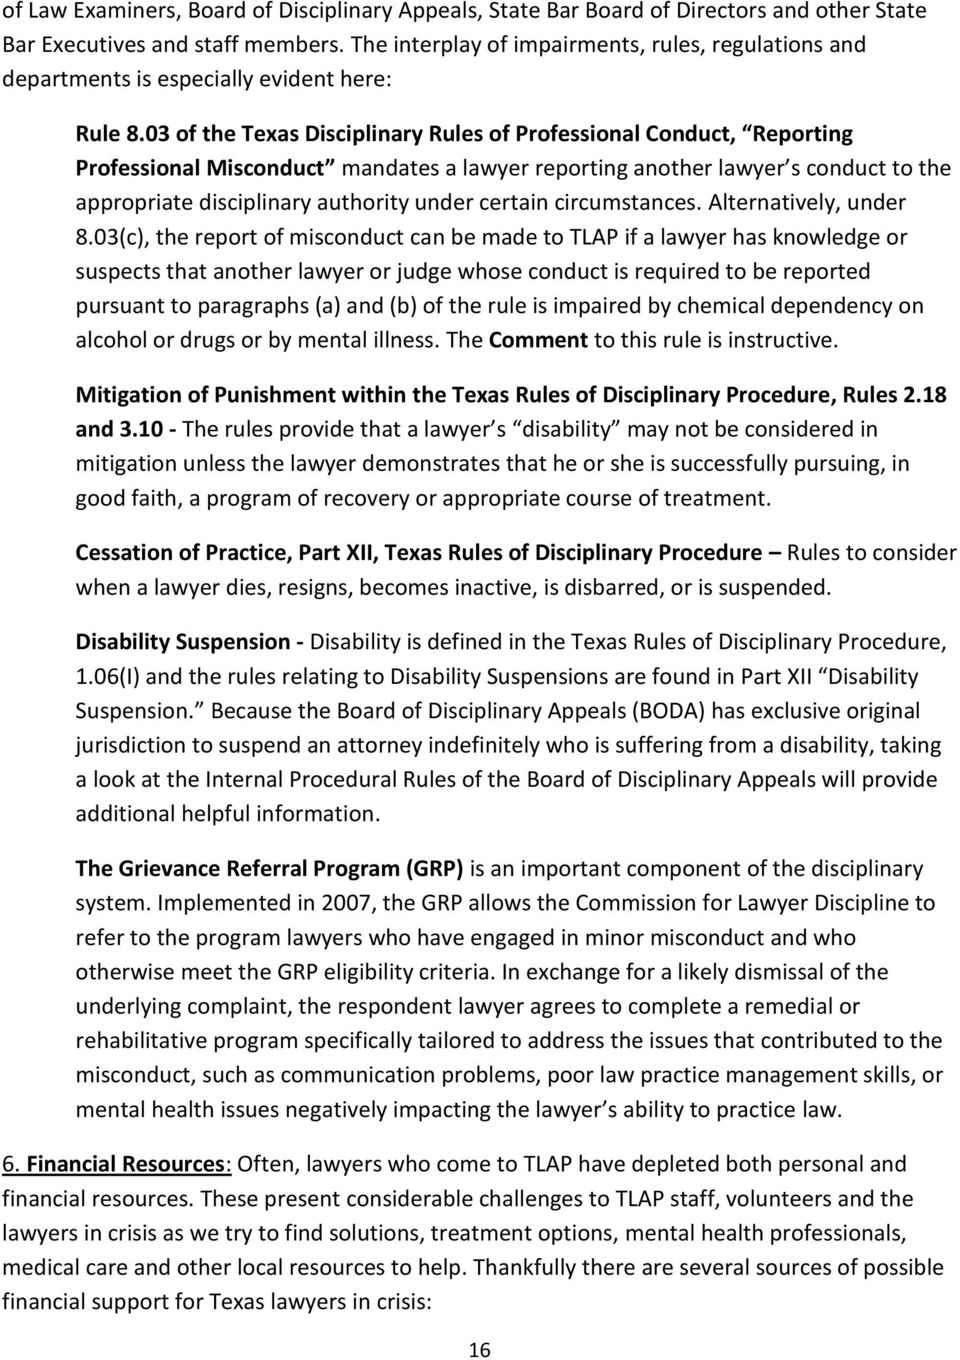 03 of the Texas Disciplinary Rules of Professional Conduct, Reporting Professional Misconduct mandates a lawyer reporting another lawyer s conduct to the appropriate disciplinary authority under